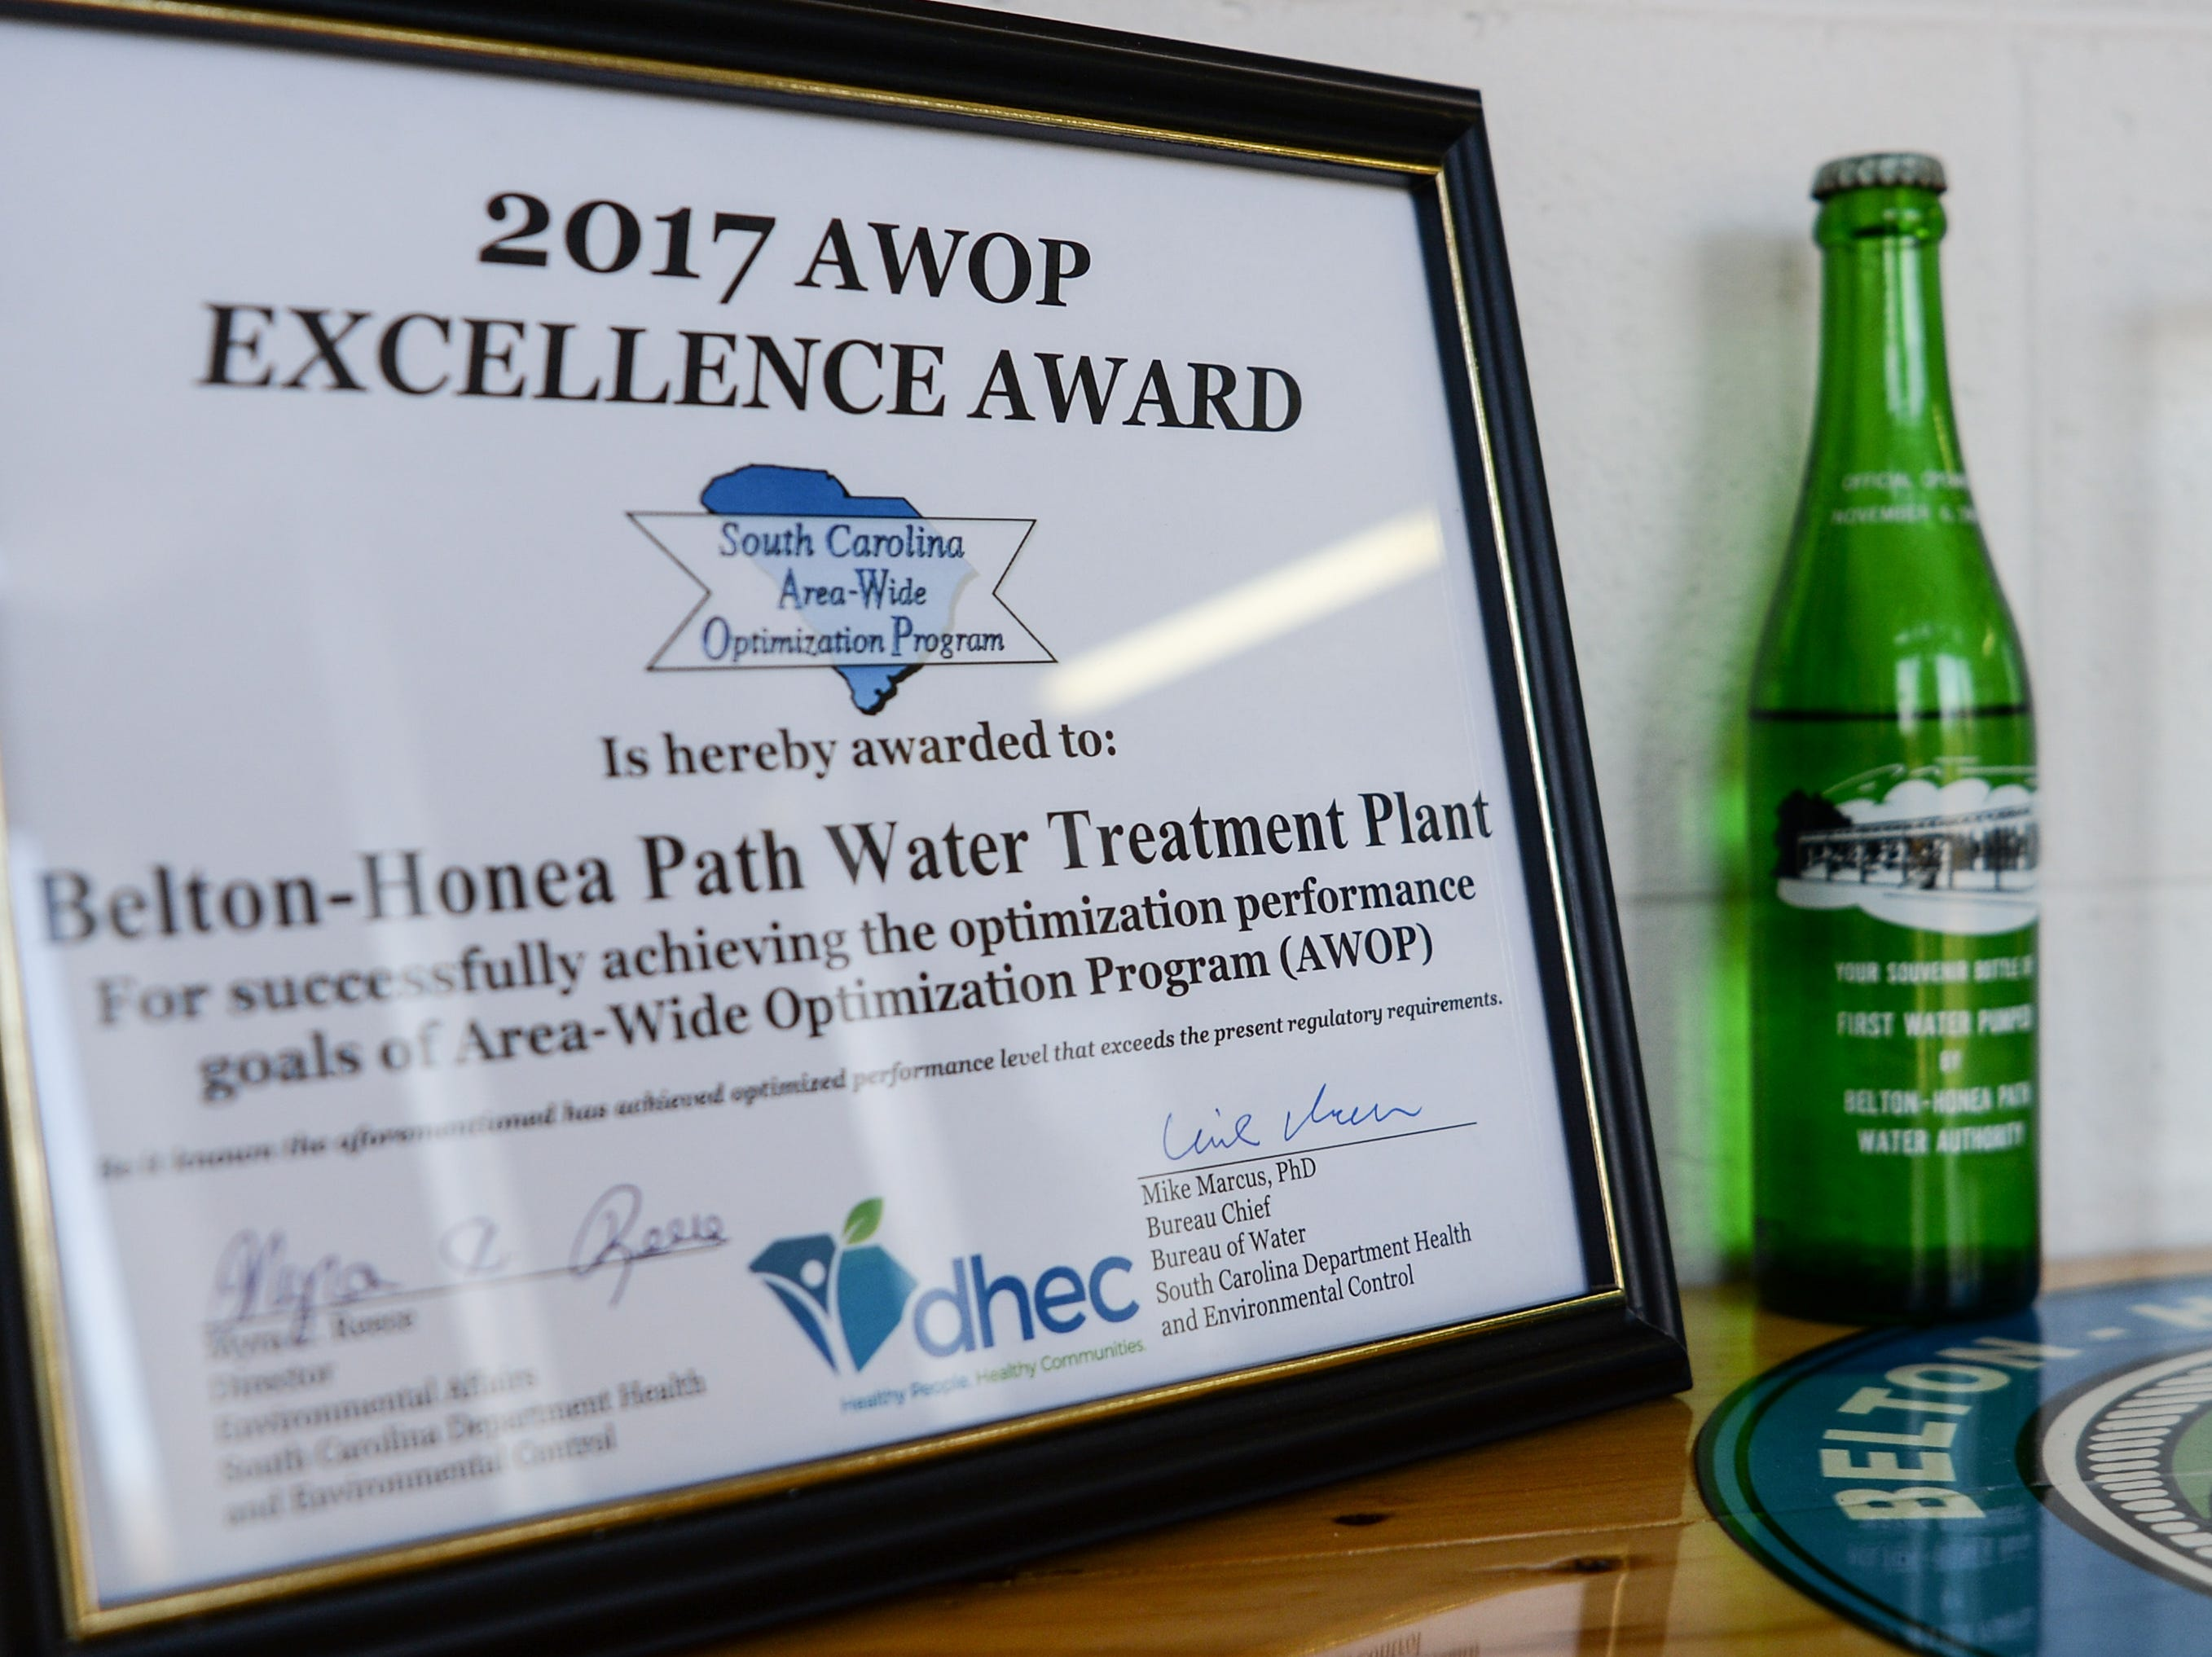 An award from 2017 for excellence next to a bottle of water saved from 1968, when the Belton Honea Path Water Authority plant opened in Honea Path.